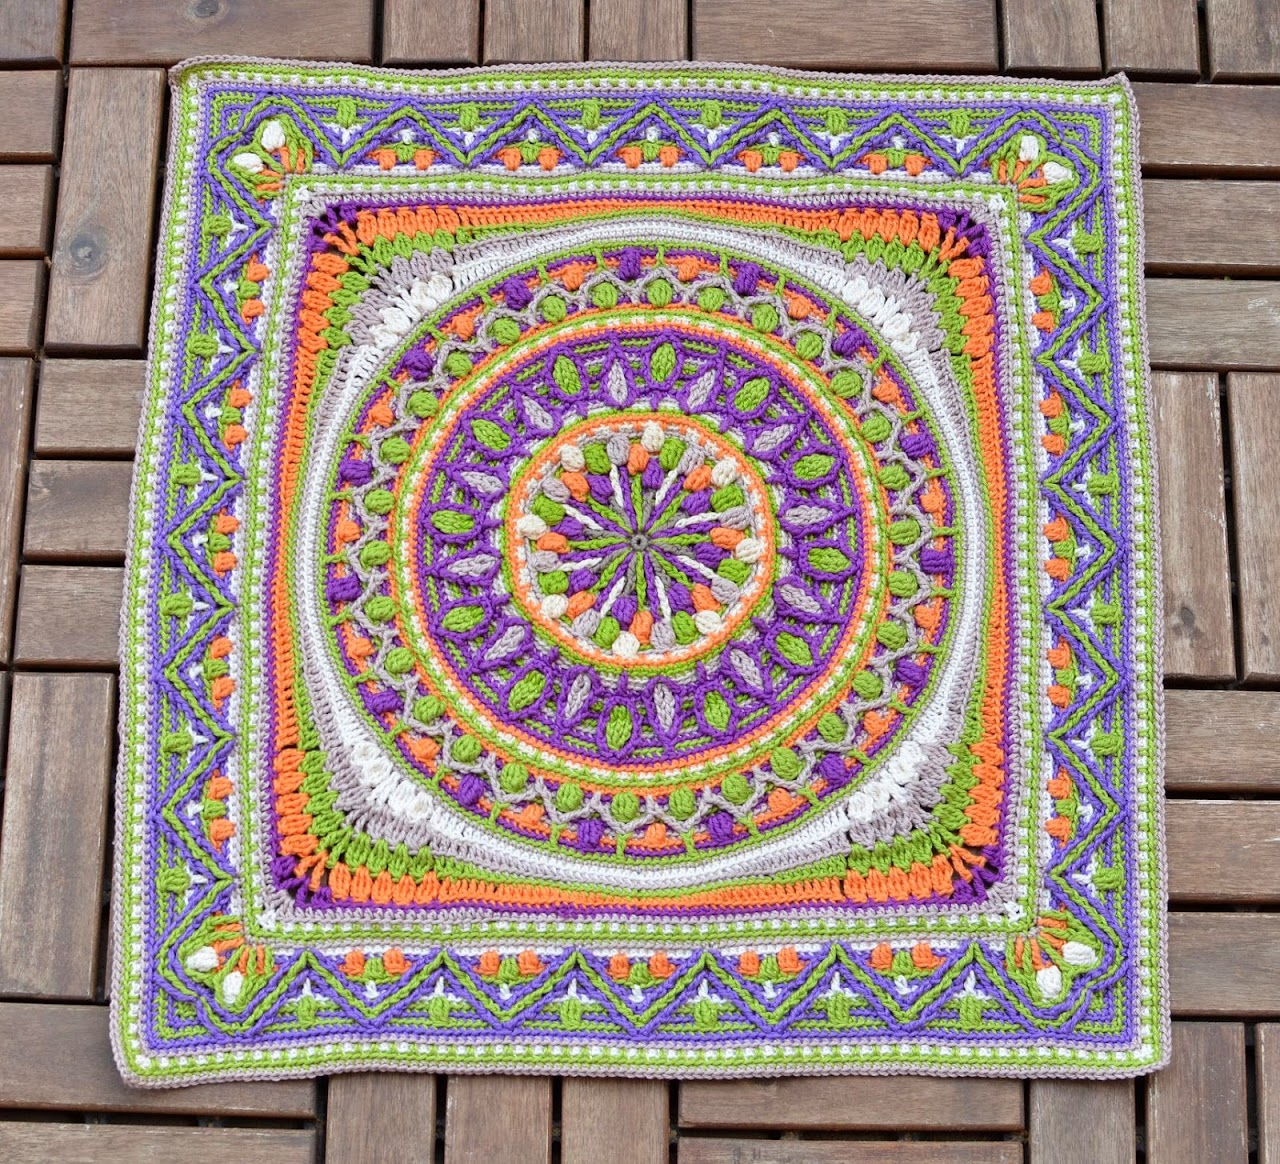 Square edge for a crochet mandala